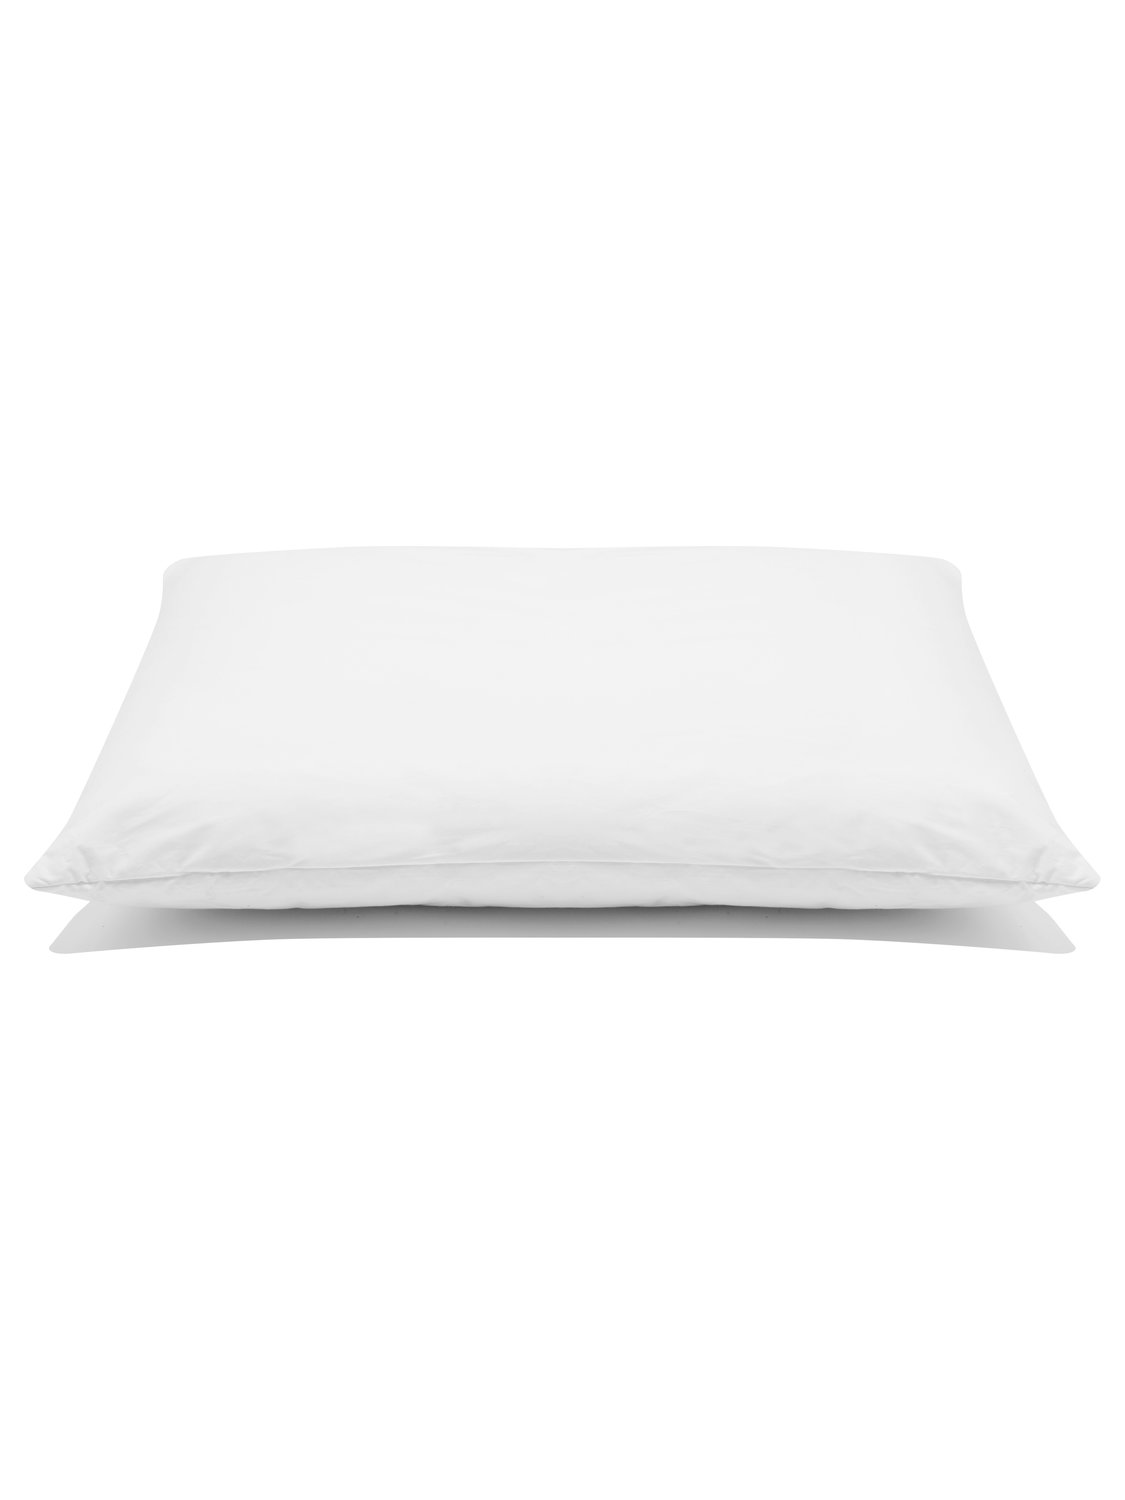 Image of Homeware memory foam supportive comfortable pillow - White